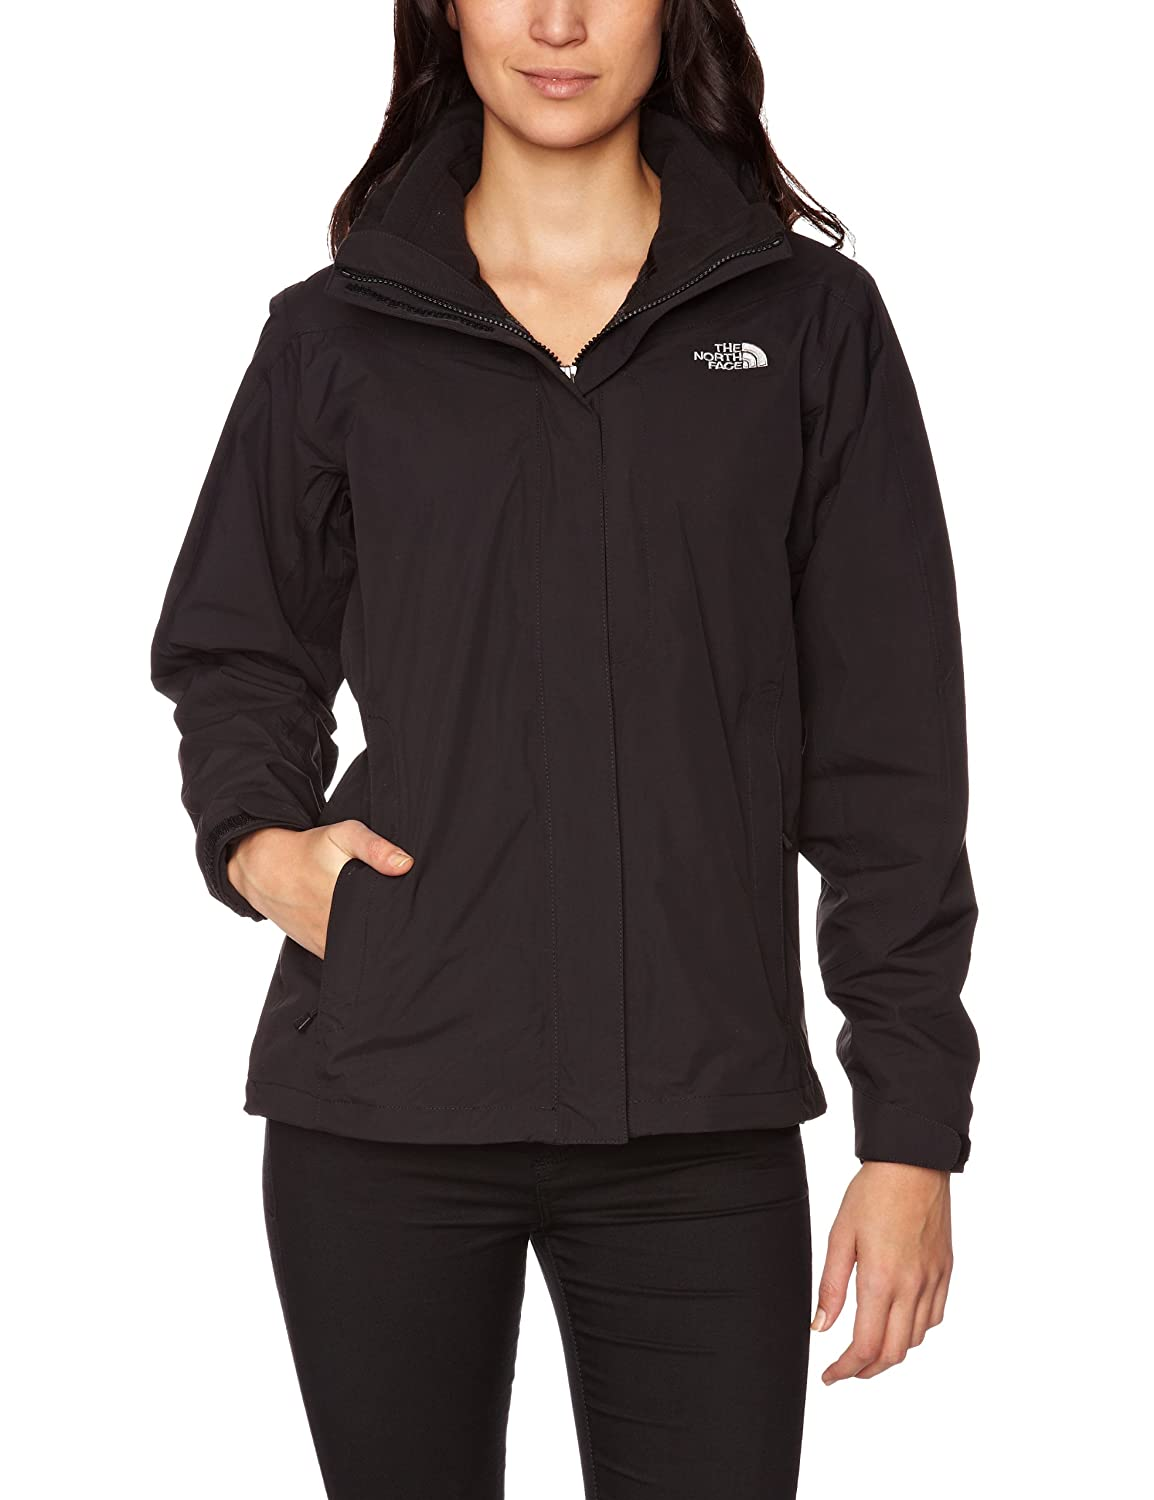 THE NORTH FACE Damen Outdoorjacke Evolution Triclimate